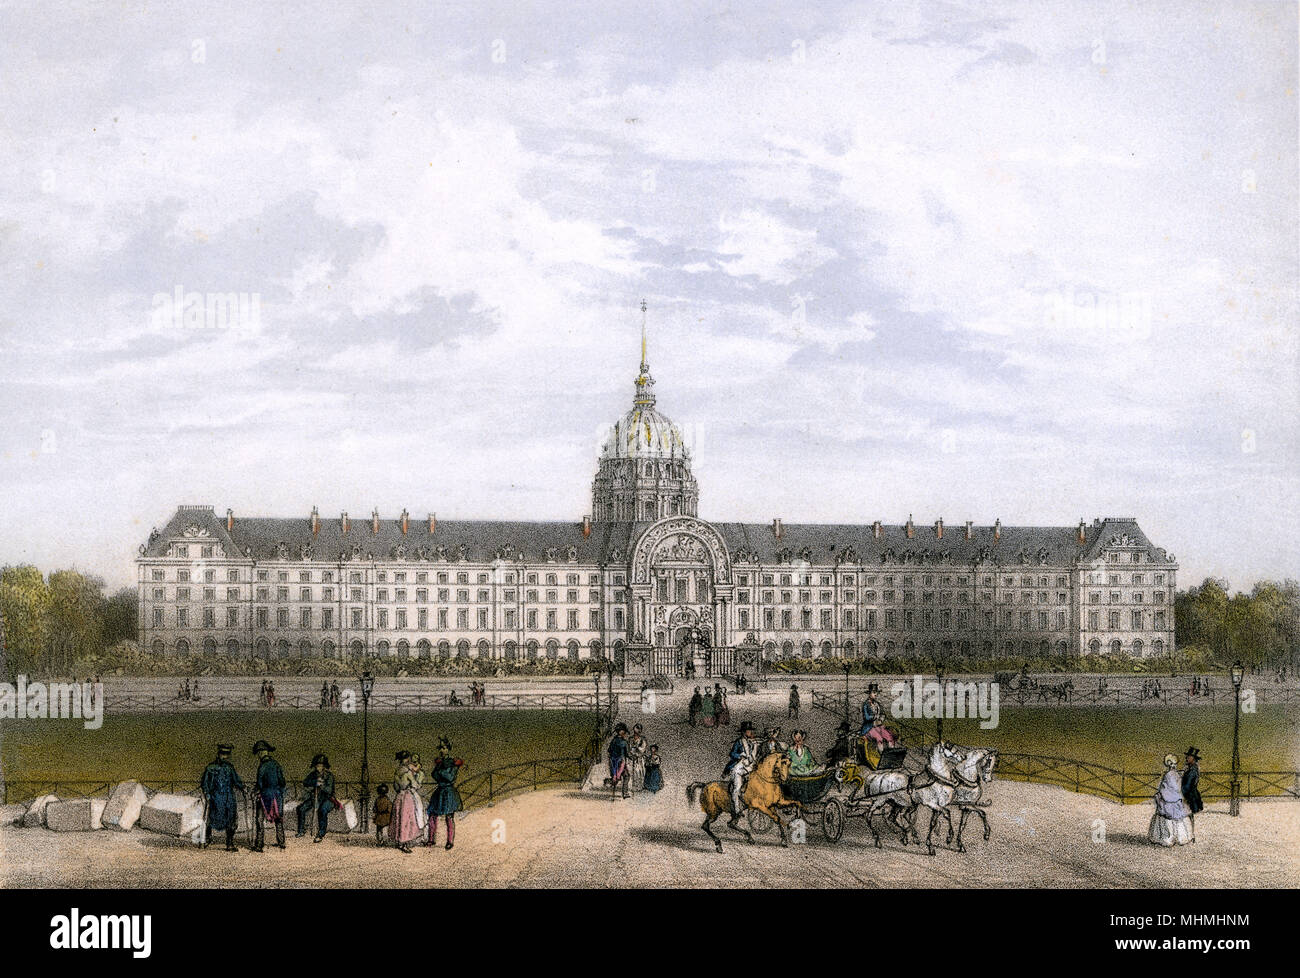 The Hotel des Invalides was constructed as a veterans' home and hospital      Date: circa 1850 - Stock Image